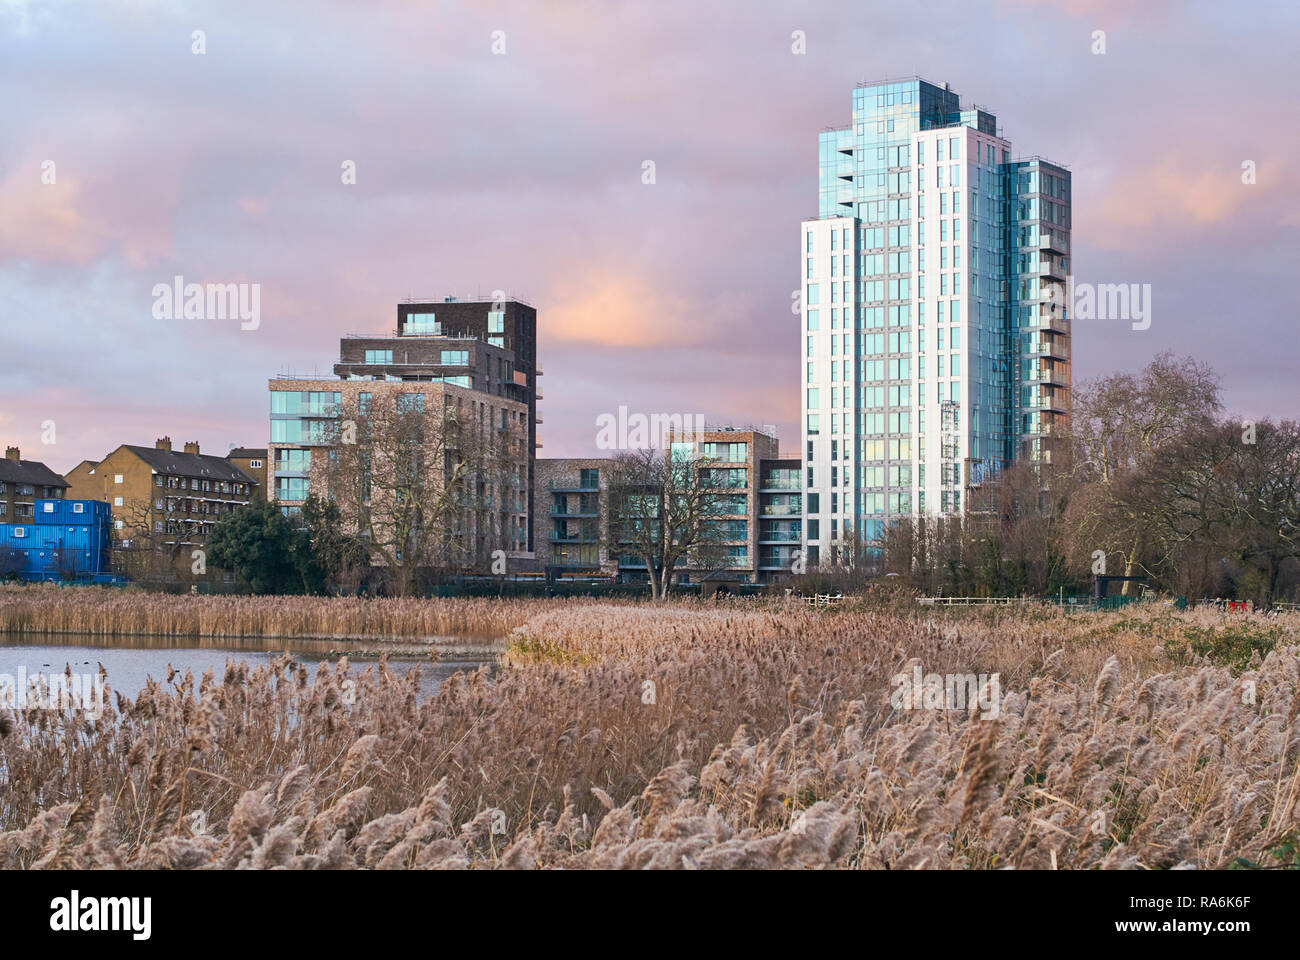 New apartment buildings at Woodberry Down, North London, viewed from Woodberry Wetlands at dusk, in winter - Stock Image